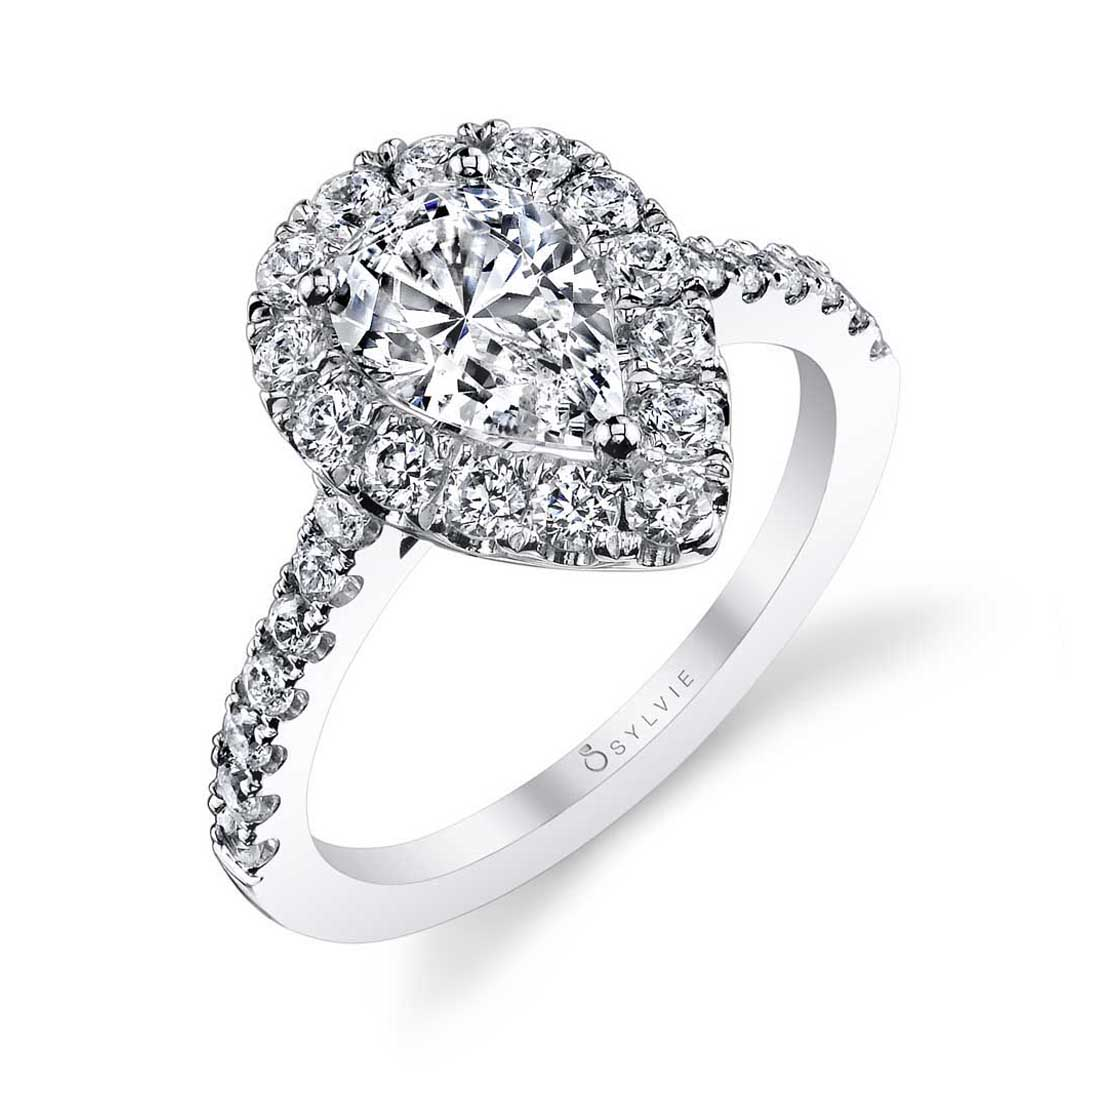 Profile Image of a Pear Shaped Engagement Ring with Halo